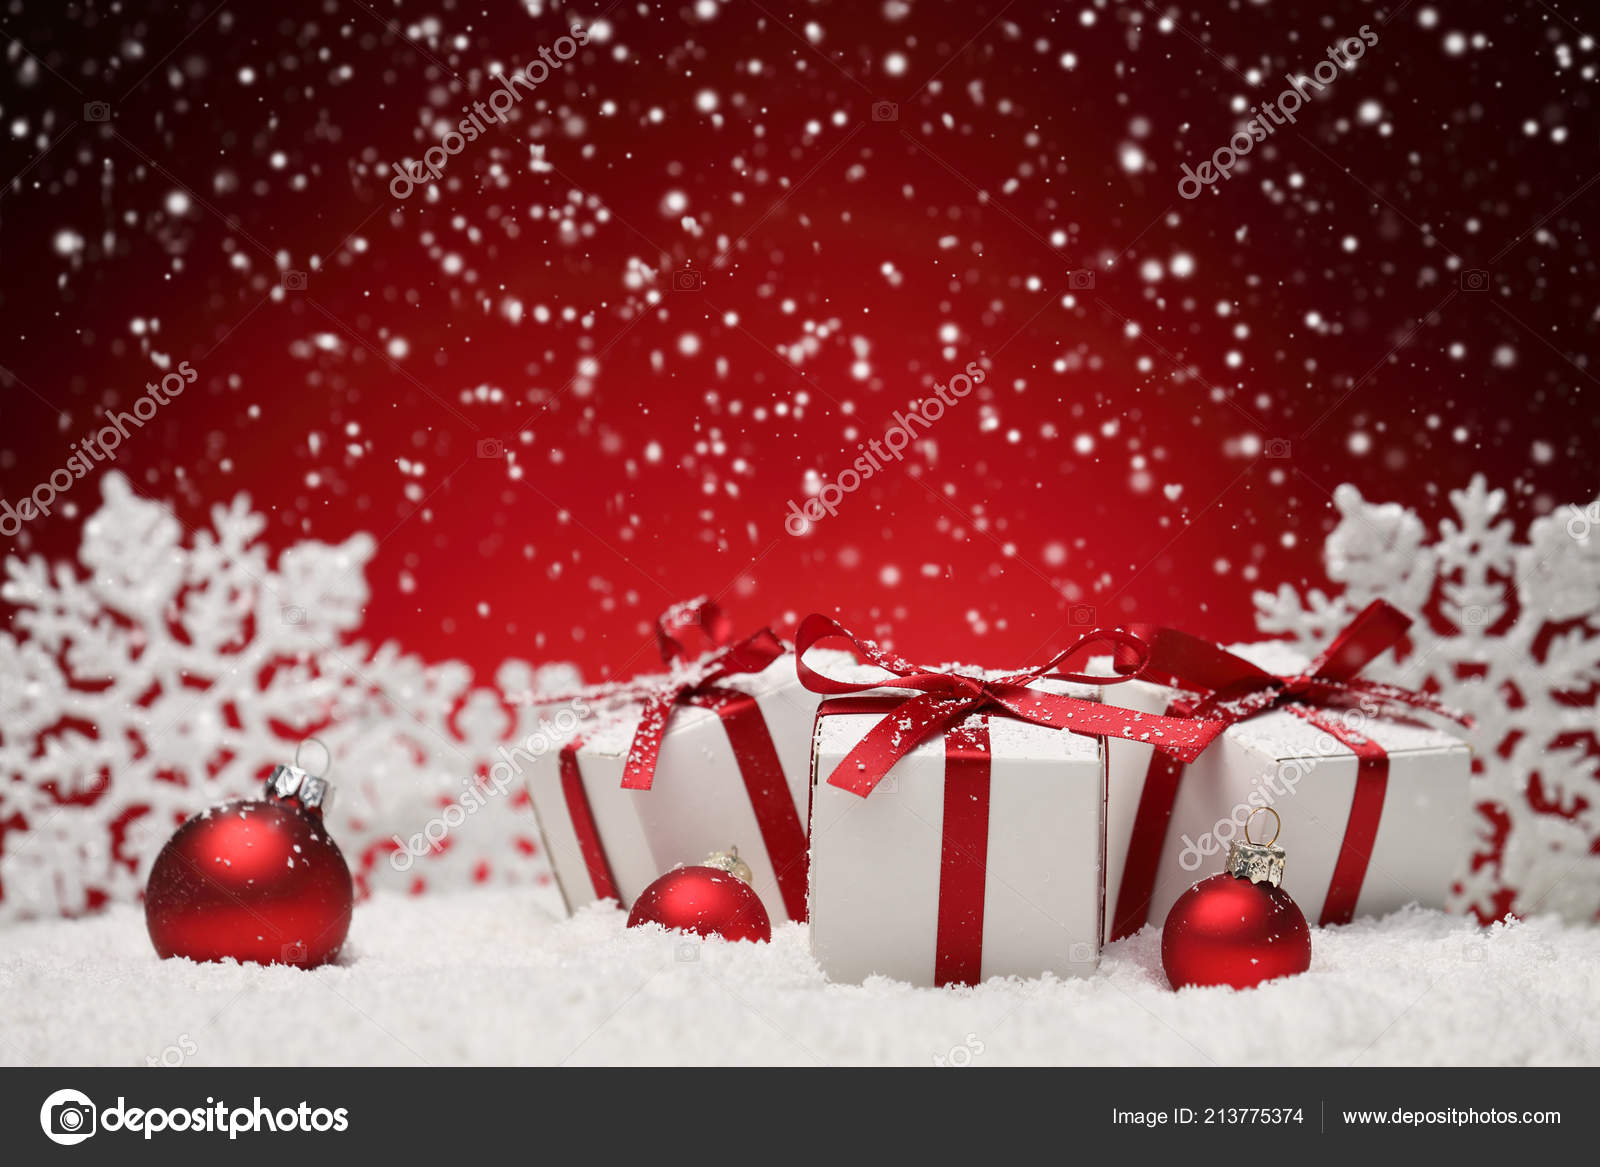 Christmas Seasonal Background High Resolution Celebration